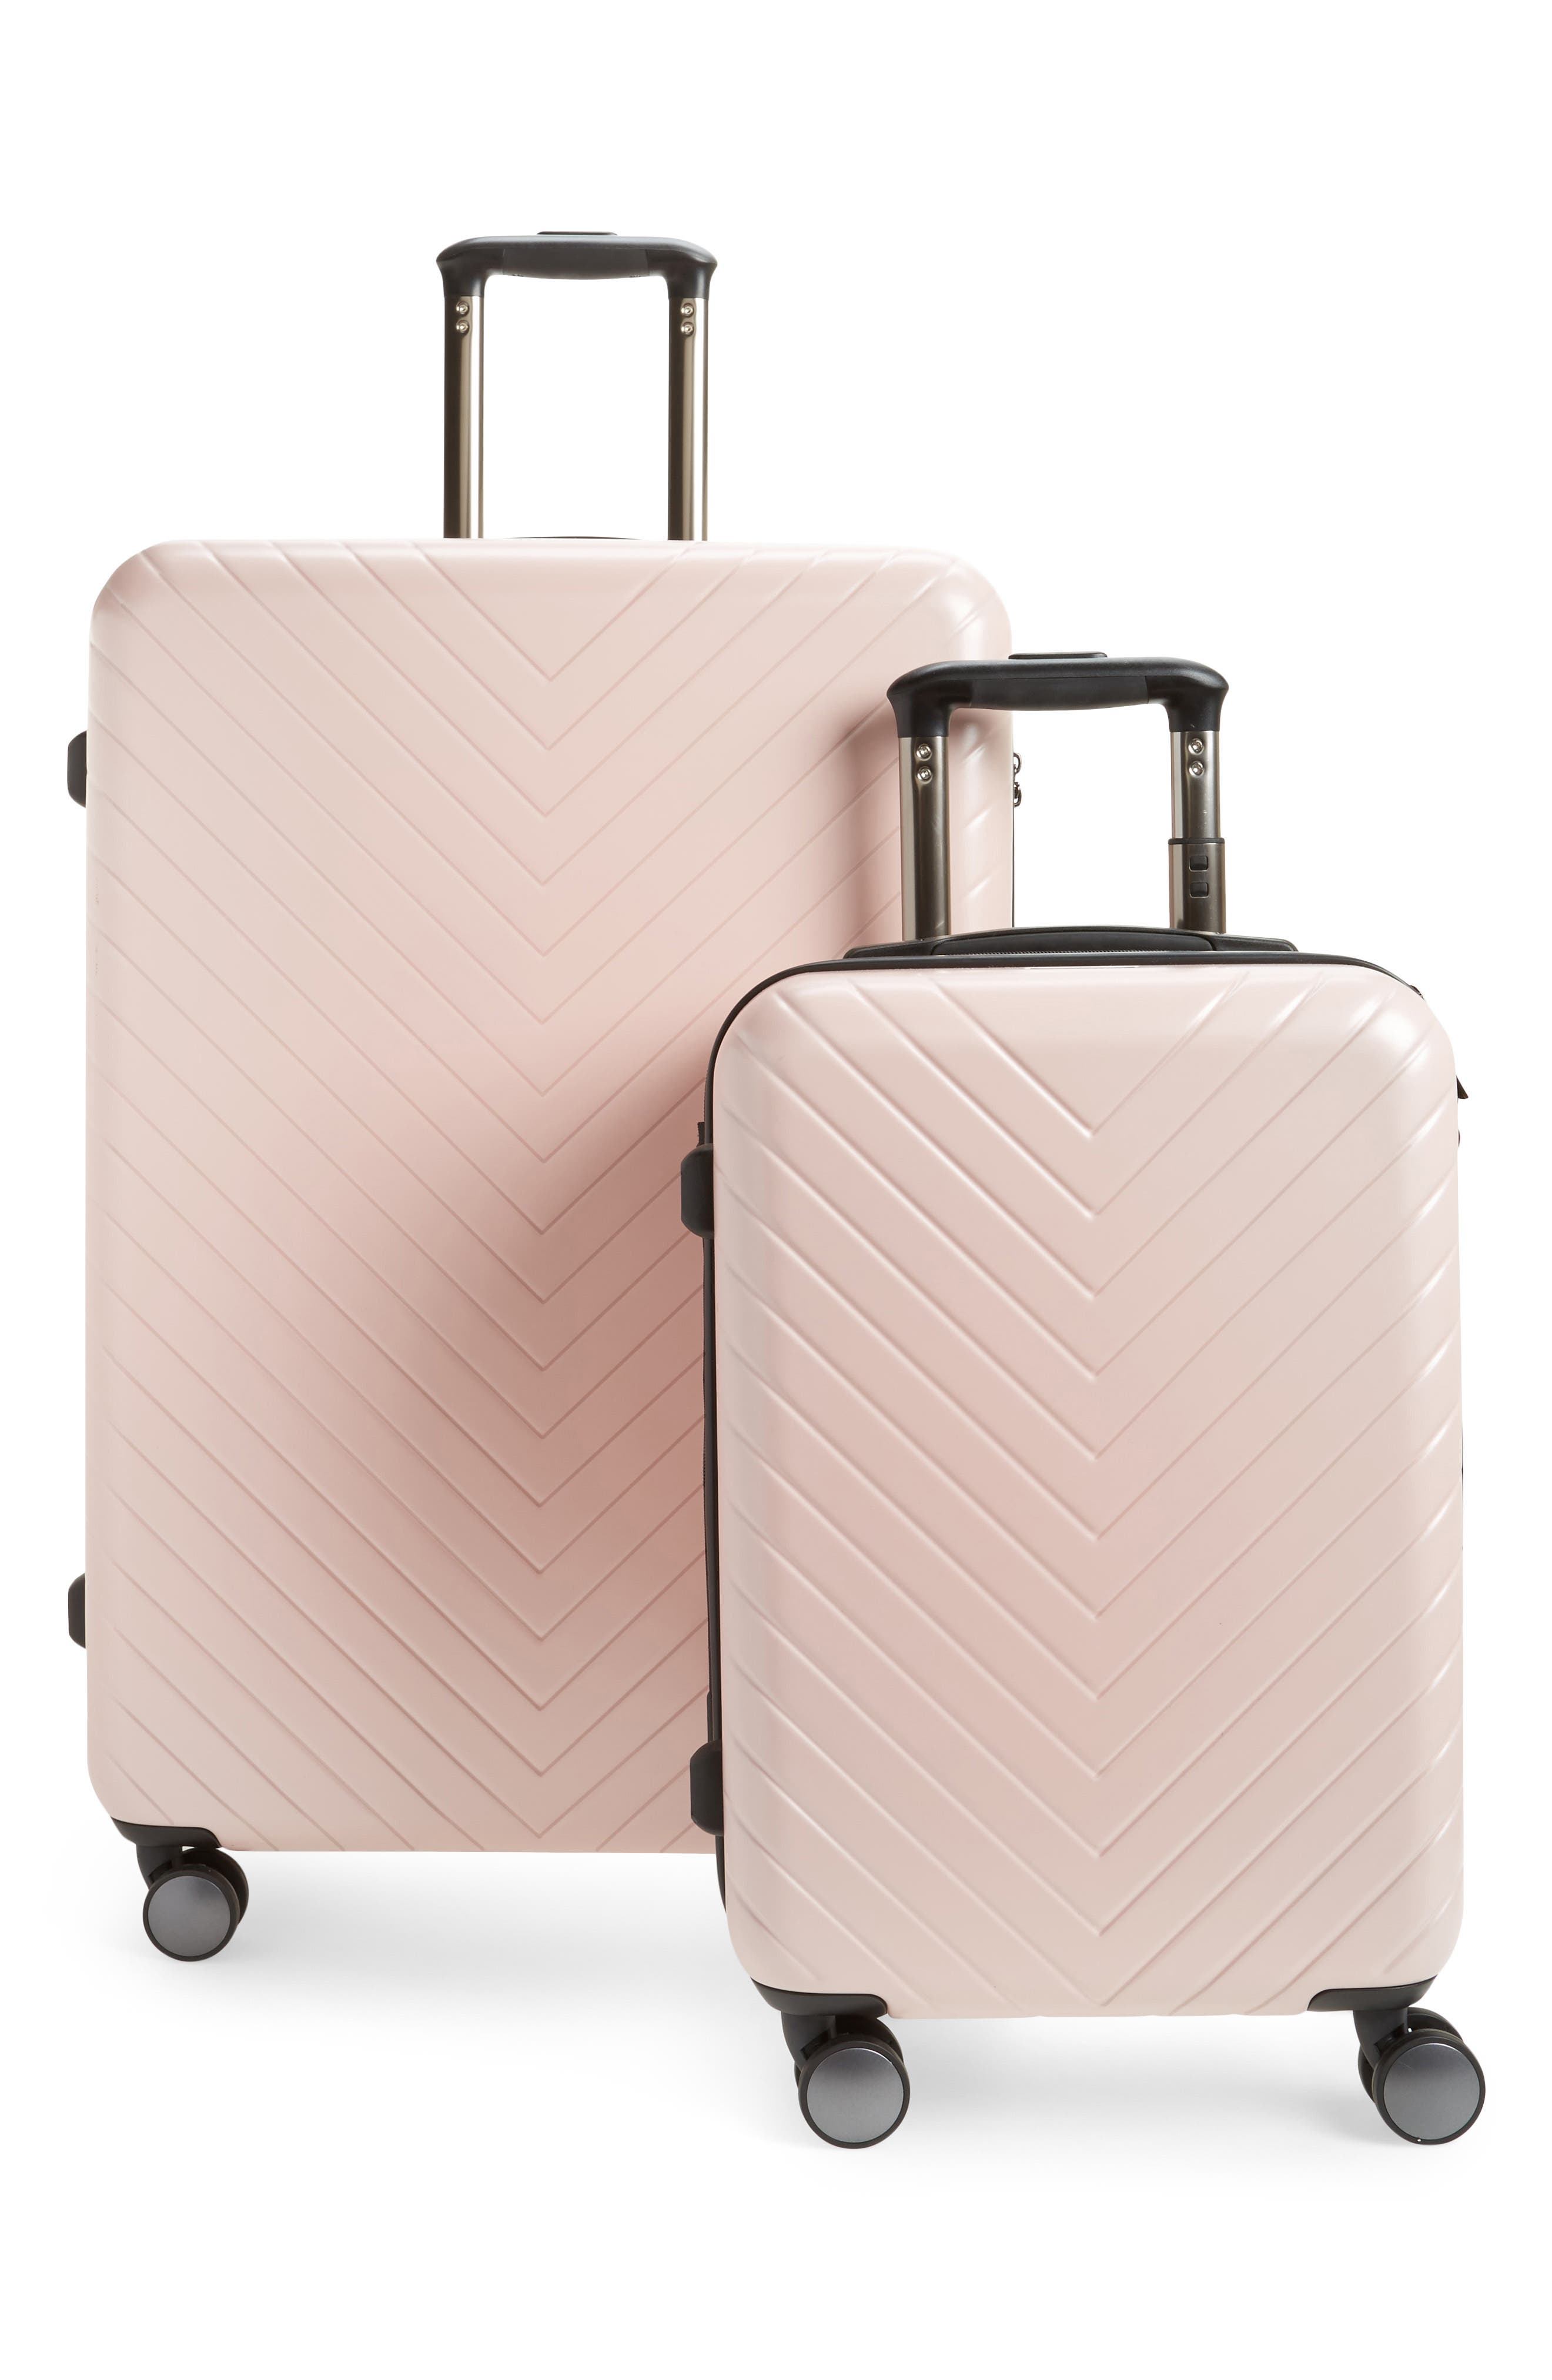 NORDSTROM, Chevron 29-Inch & 18-Inch Spinner Luggage Set, Main thumbnail 1, color, PINK HERO